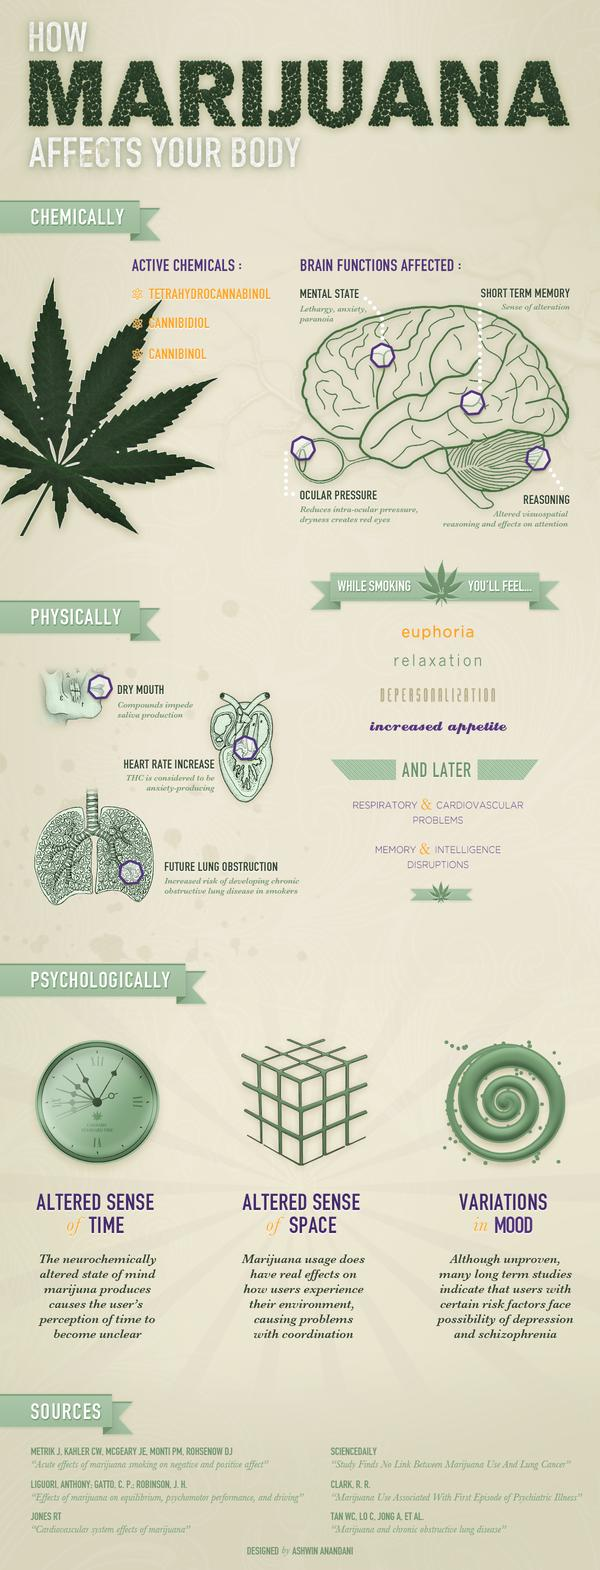 What long term negative effects does marijuana have on the body?